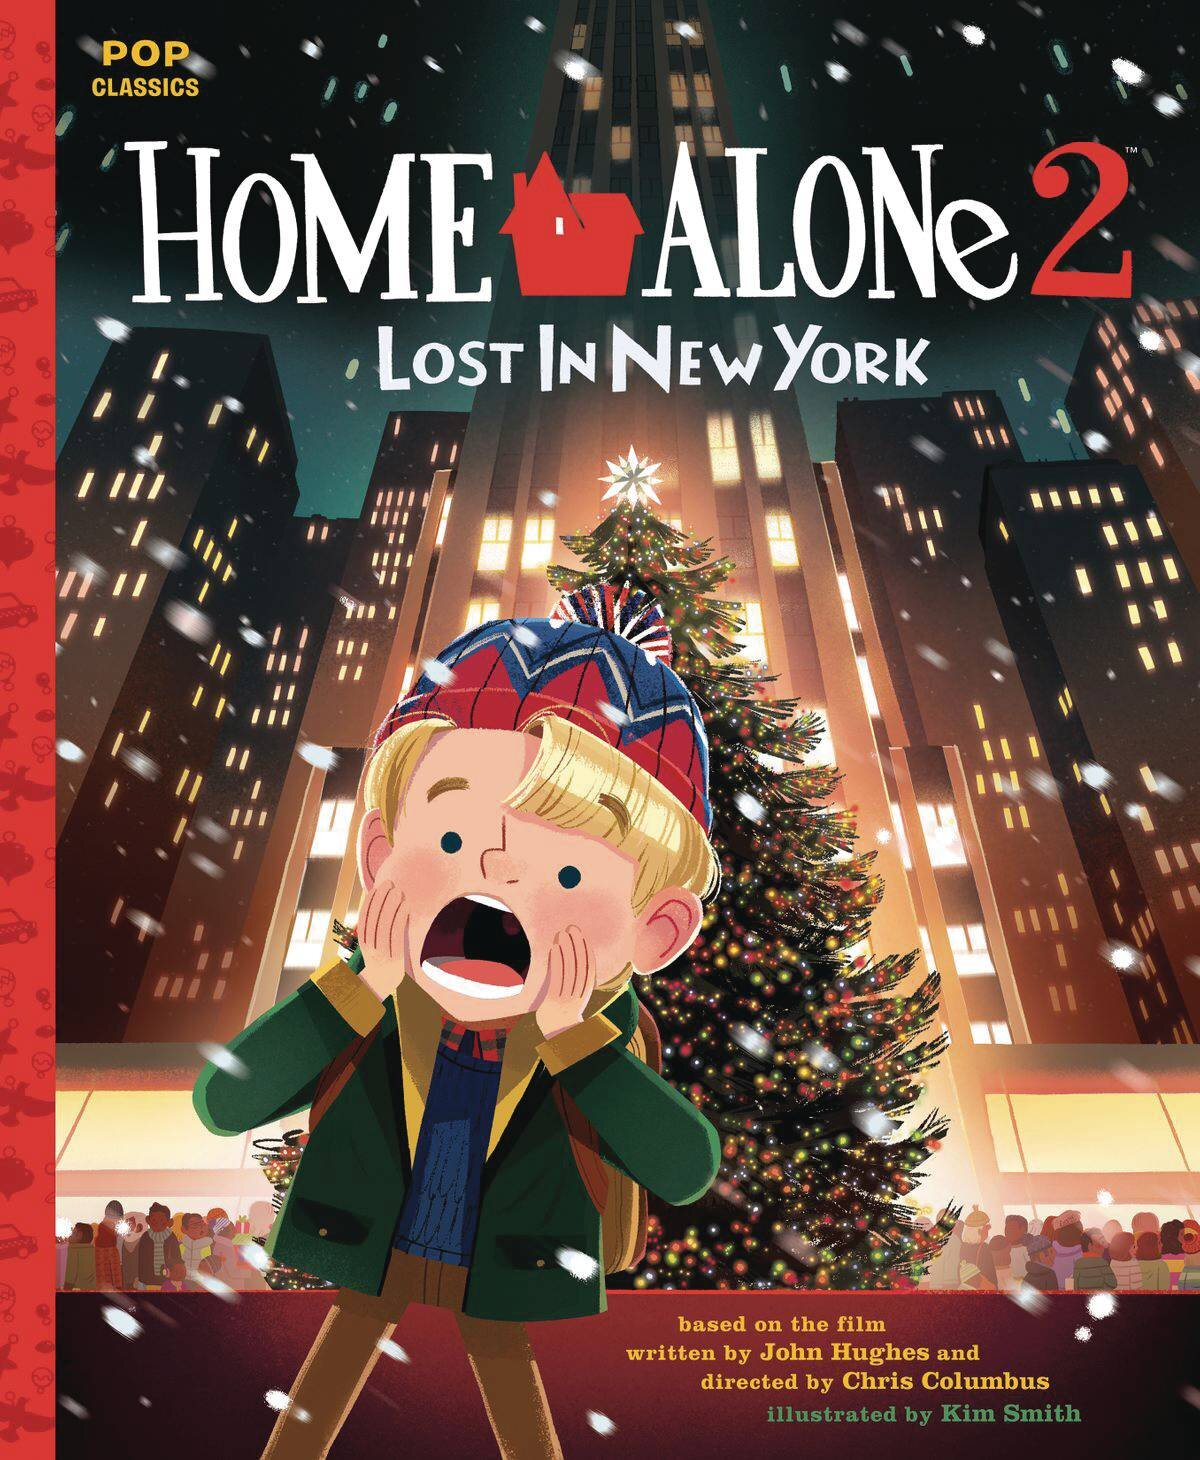 HOME ALONE 2 LOST IN NEW YORK POP CLASSIC ILLUS STORYBOOK.jpg